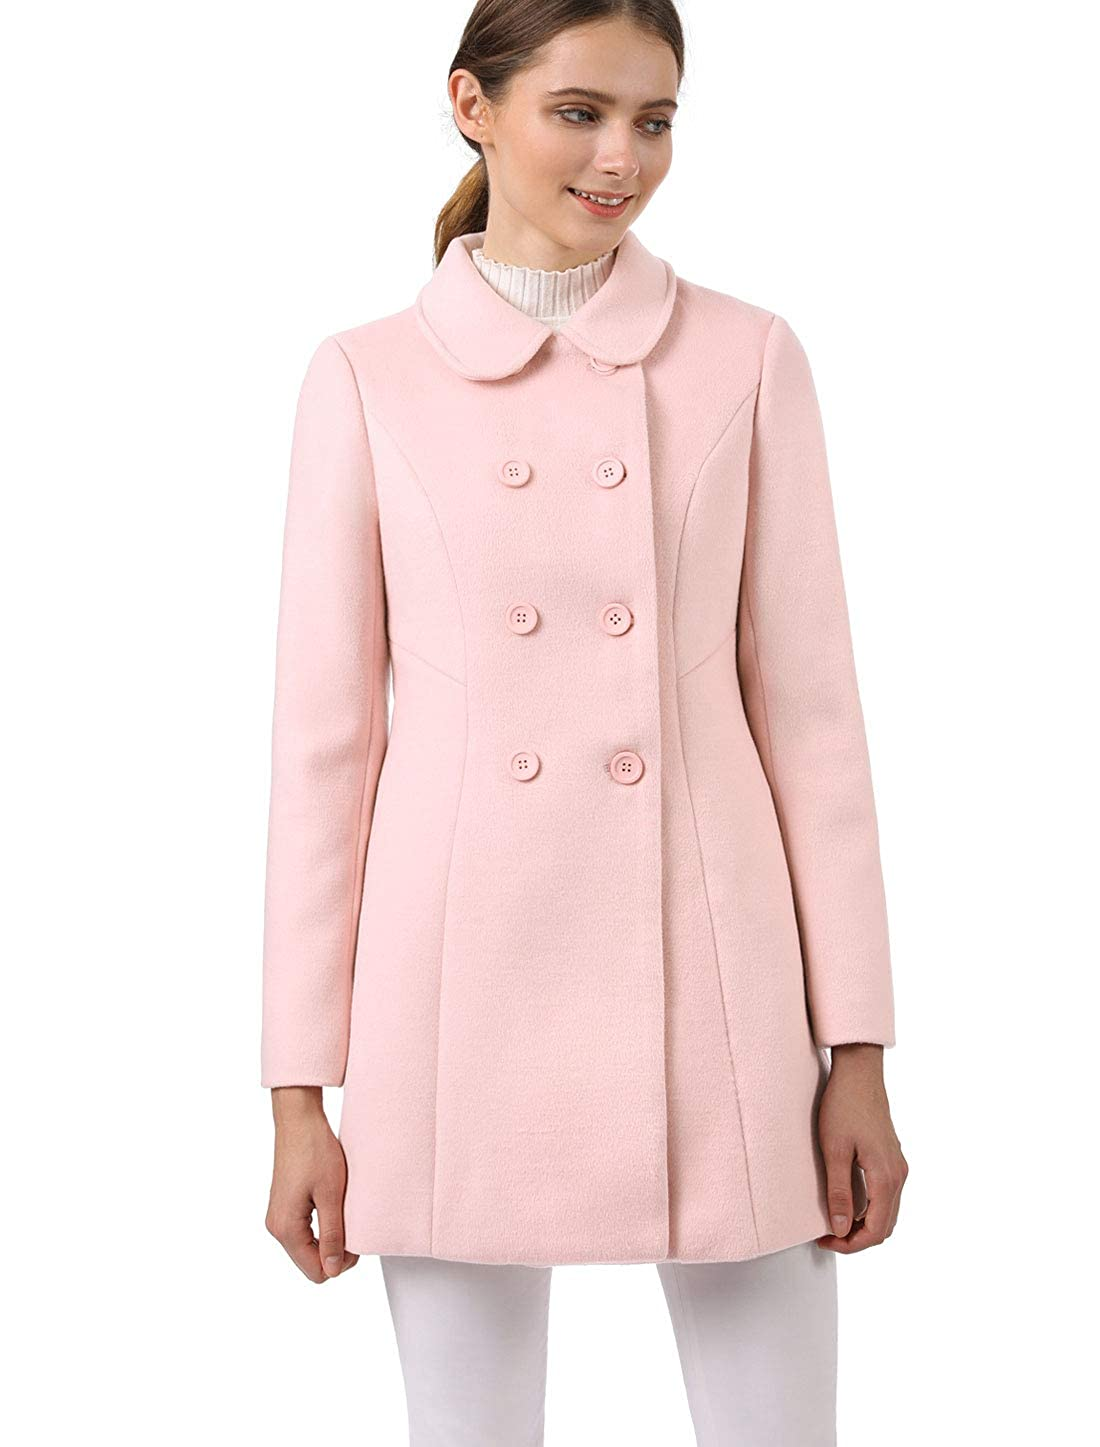 Allegra K Women's Peter Pan Collar Double Breasted Winter Long Trench Coat g18042500ux0020